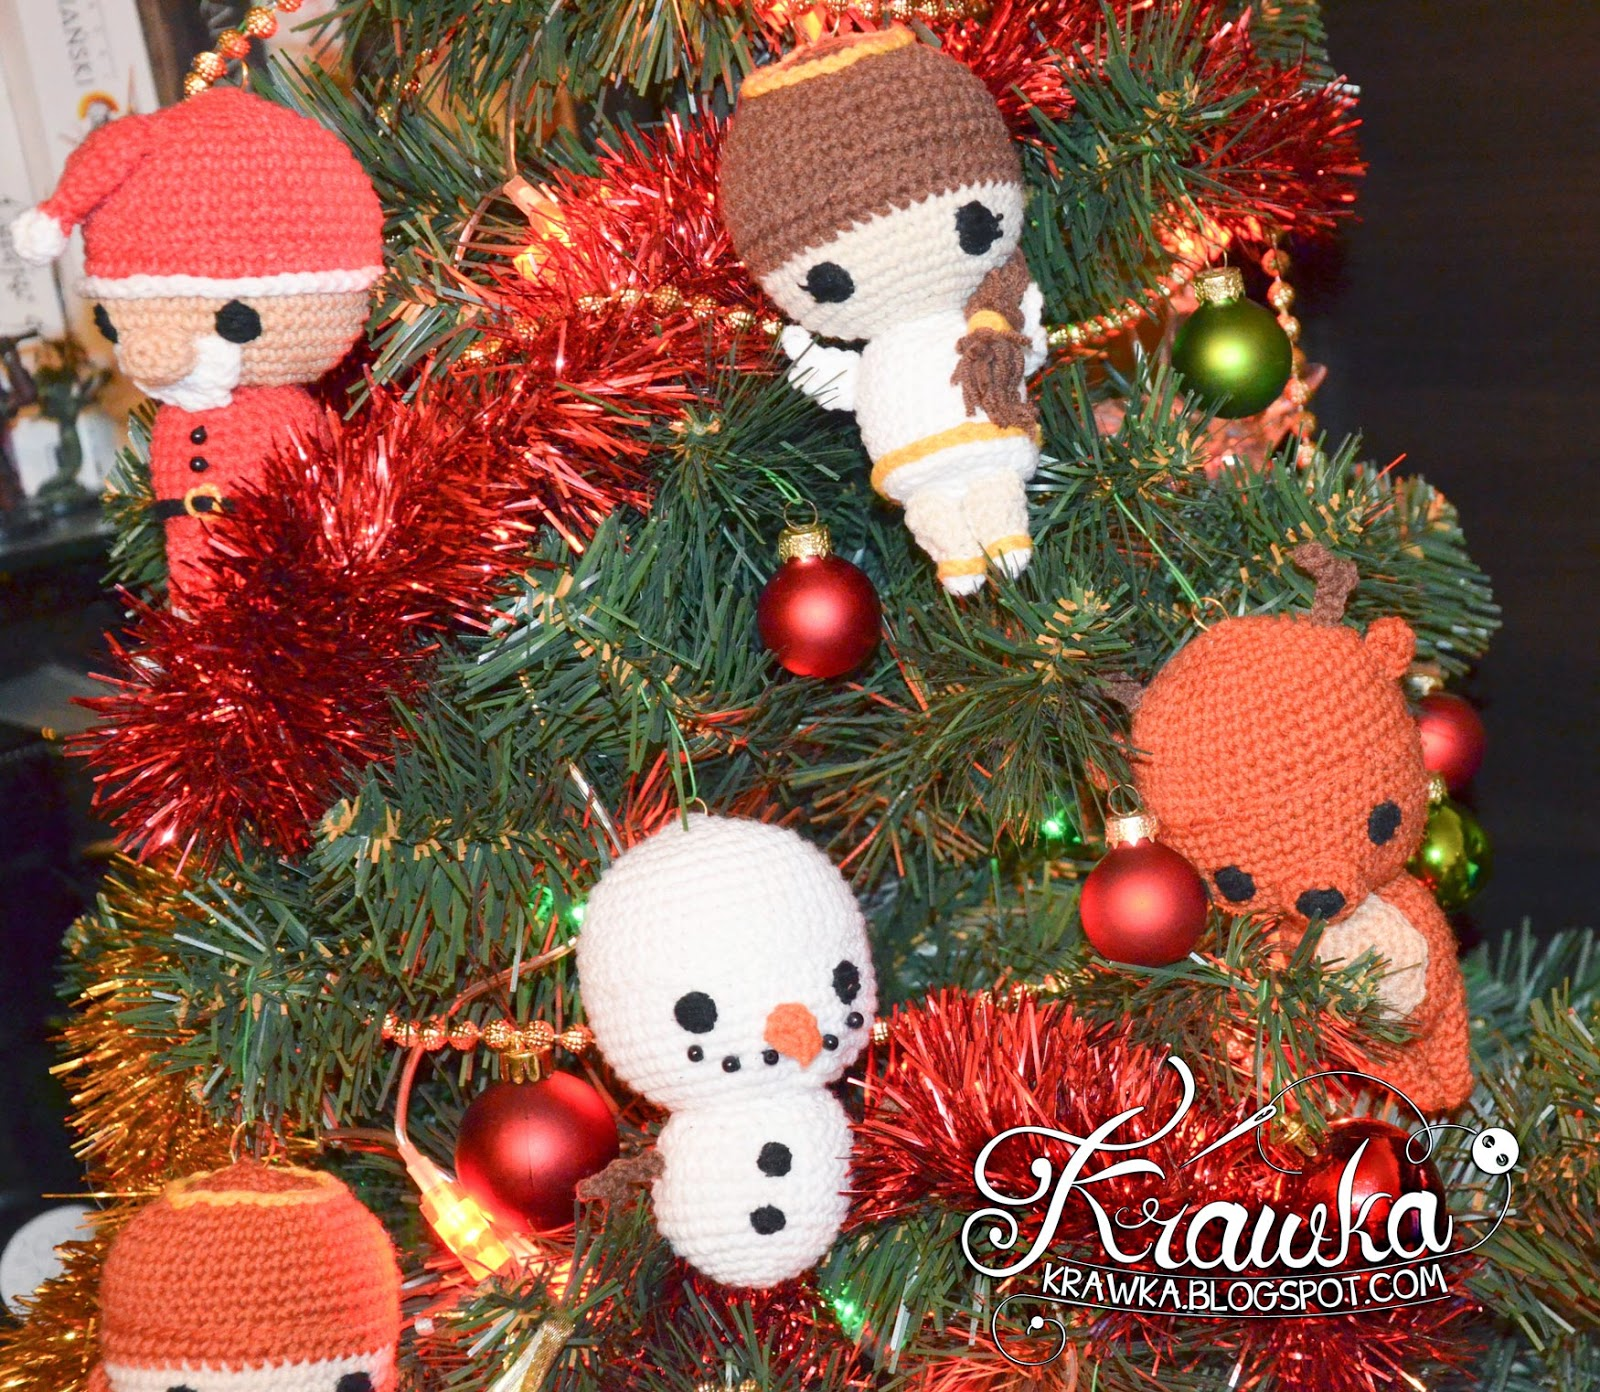 Krawka: Christmas tree ornaments crochet snowman, reindeer, angel